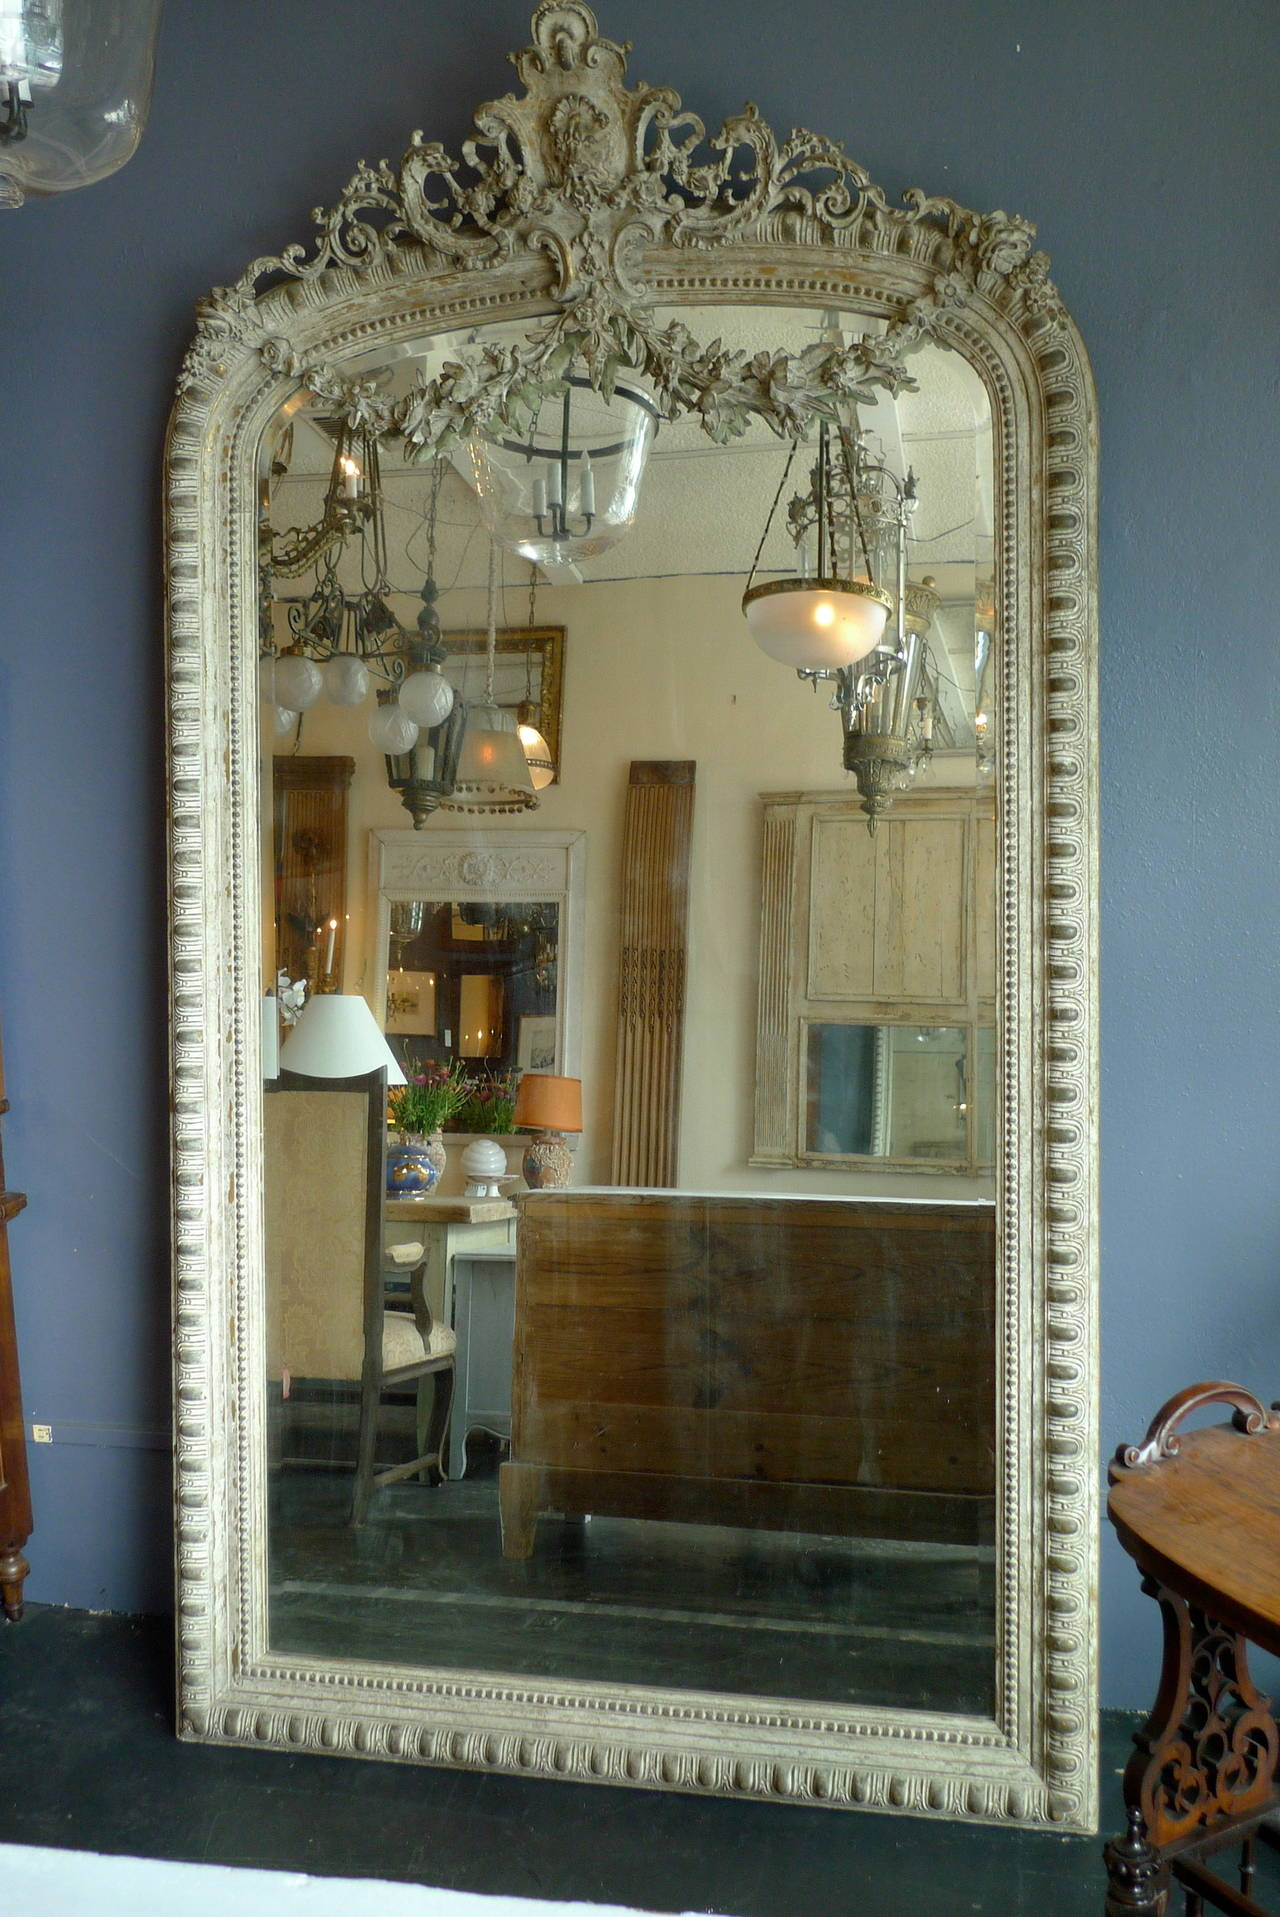 how to say the mirror in french